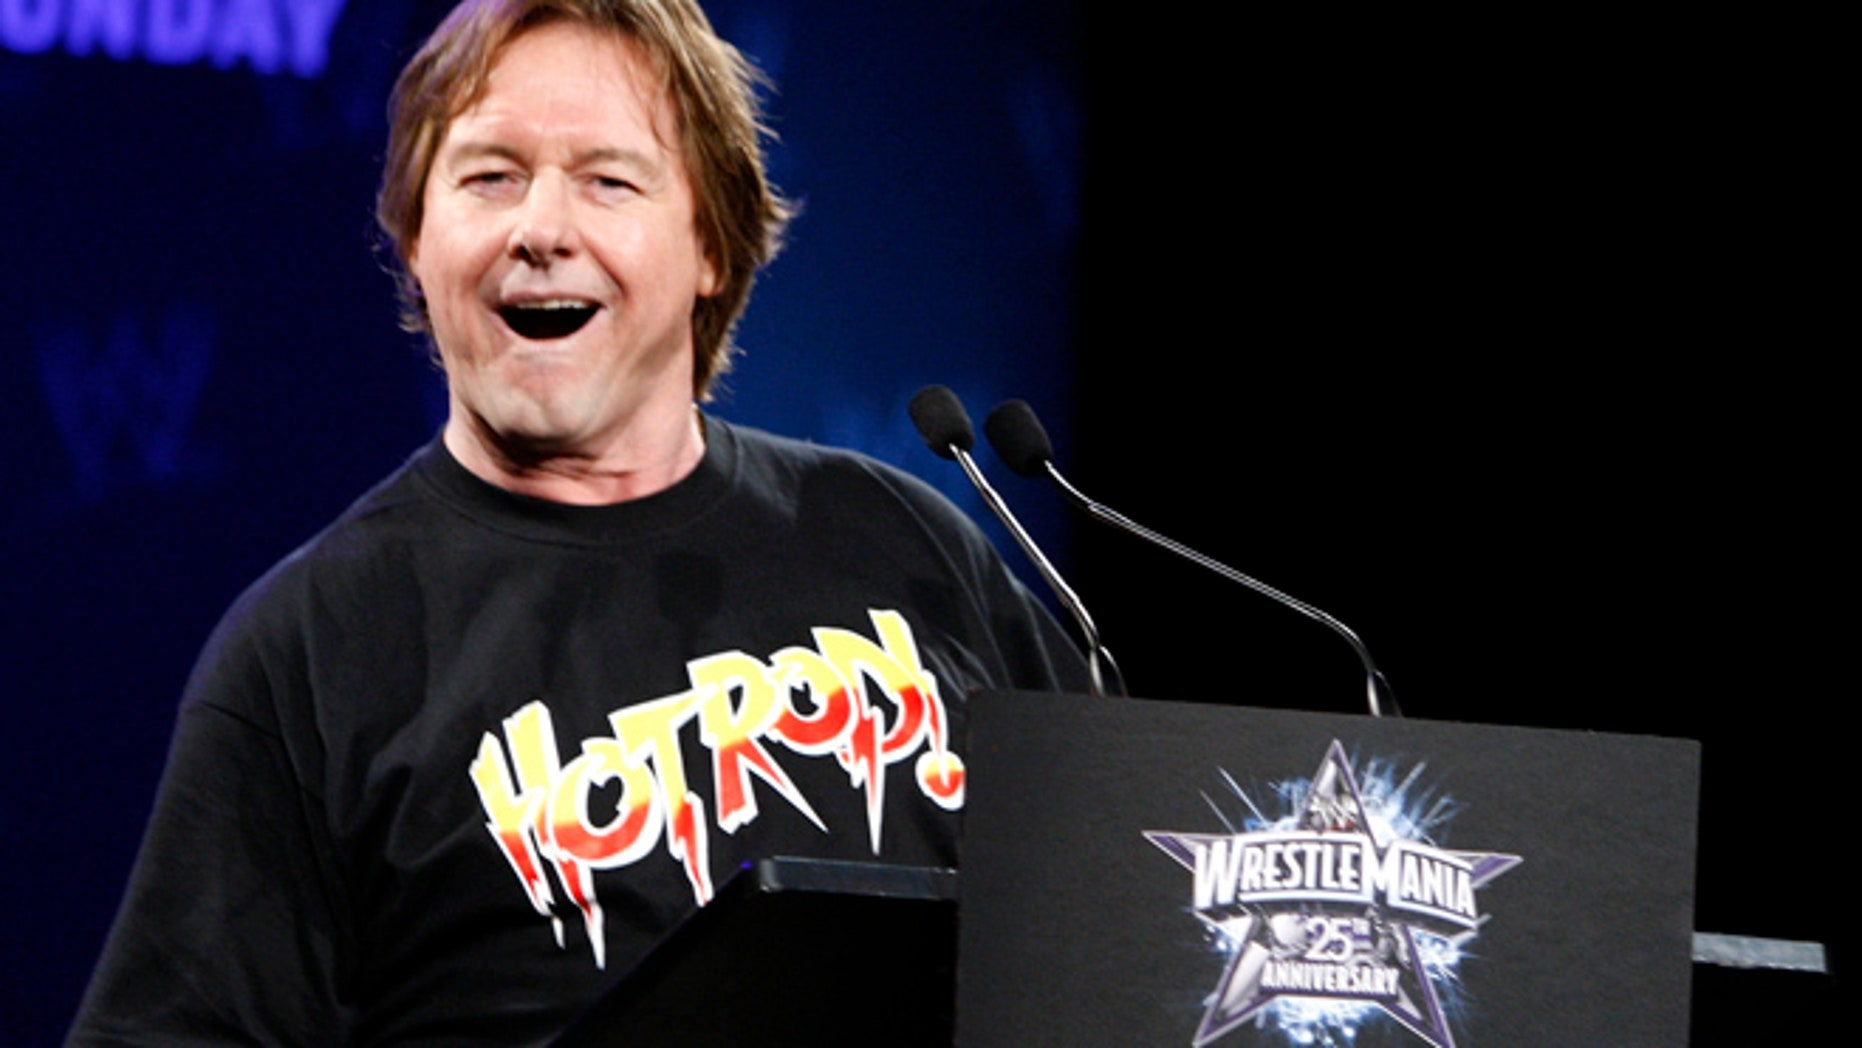 "WWE Hall of Fame Wrestler ""Rowdy"" Roddy Piper speaks during a press conference for the 25th Anniversary of WrestleMania, as wrestler Chris Jericho (R) looks on in New York March 31, 2009. The 25th Anniversary of WrestleMania will take place at Reliant Stadium in Houston, Texas April 5.     REUTERS/Brendan McDermid (UNITED STATES) - RTXDGPP"